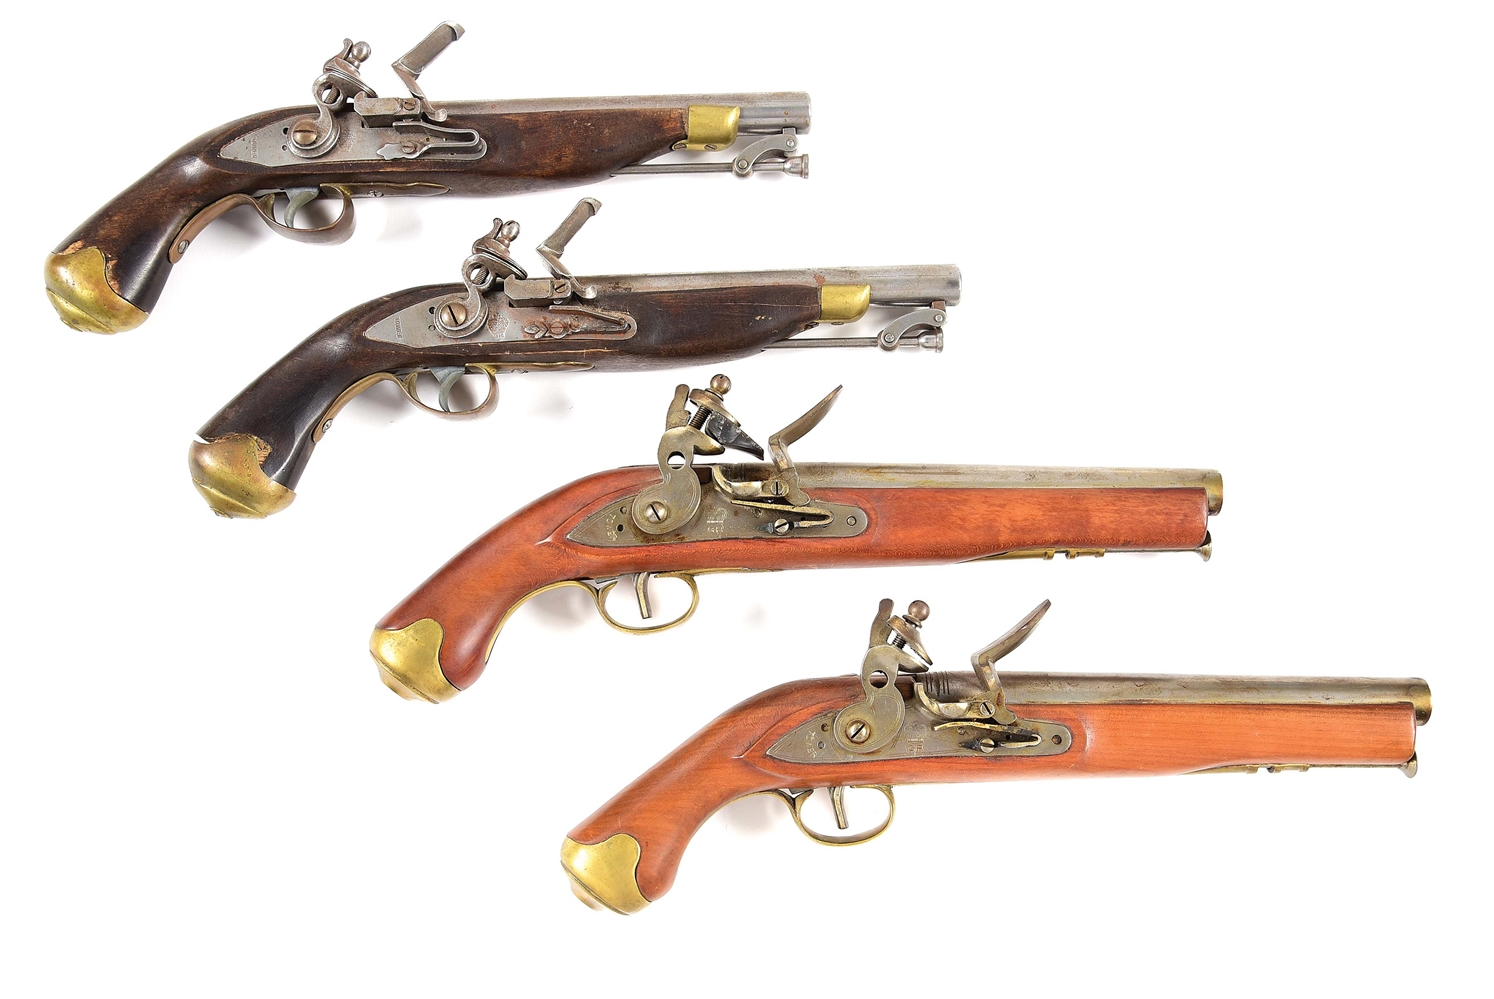 (A) LOT OF 4: REPRODUCTION BRITISH PATTERN FLINTLOCK PISTOLS.